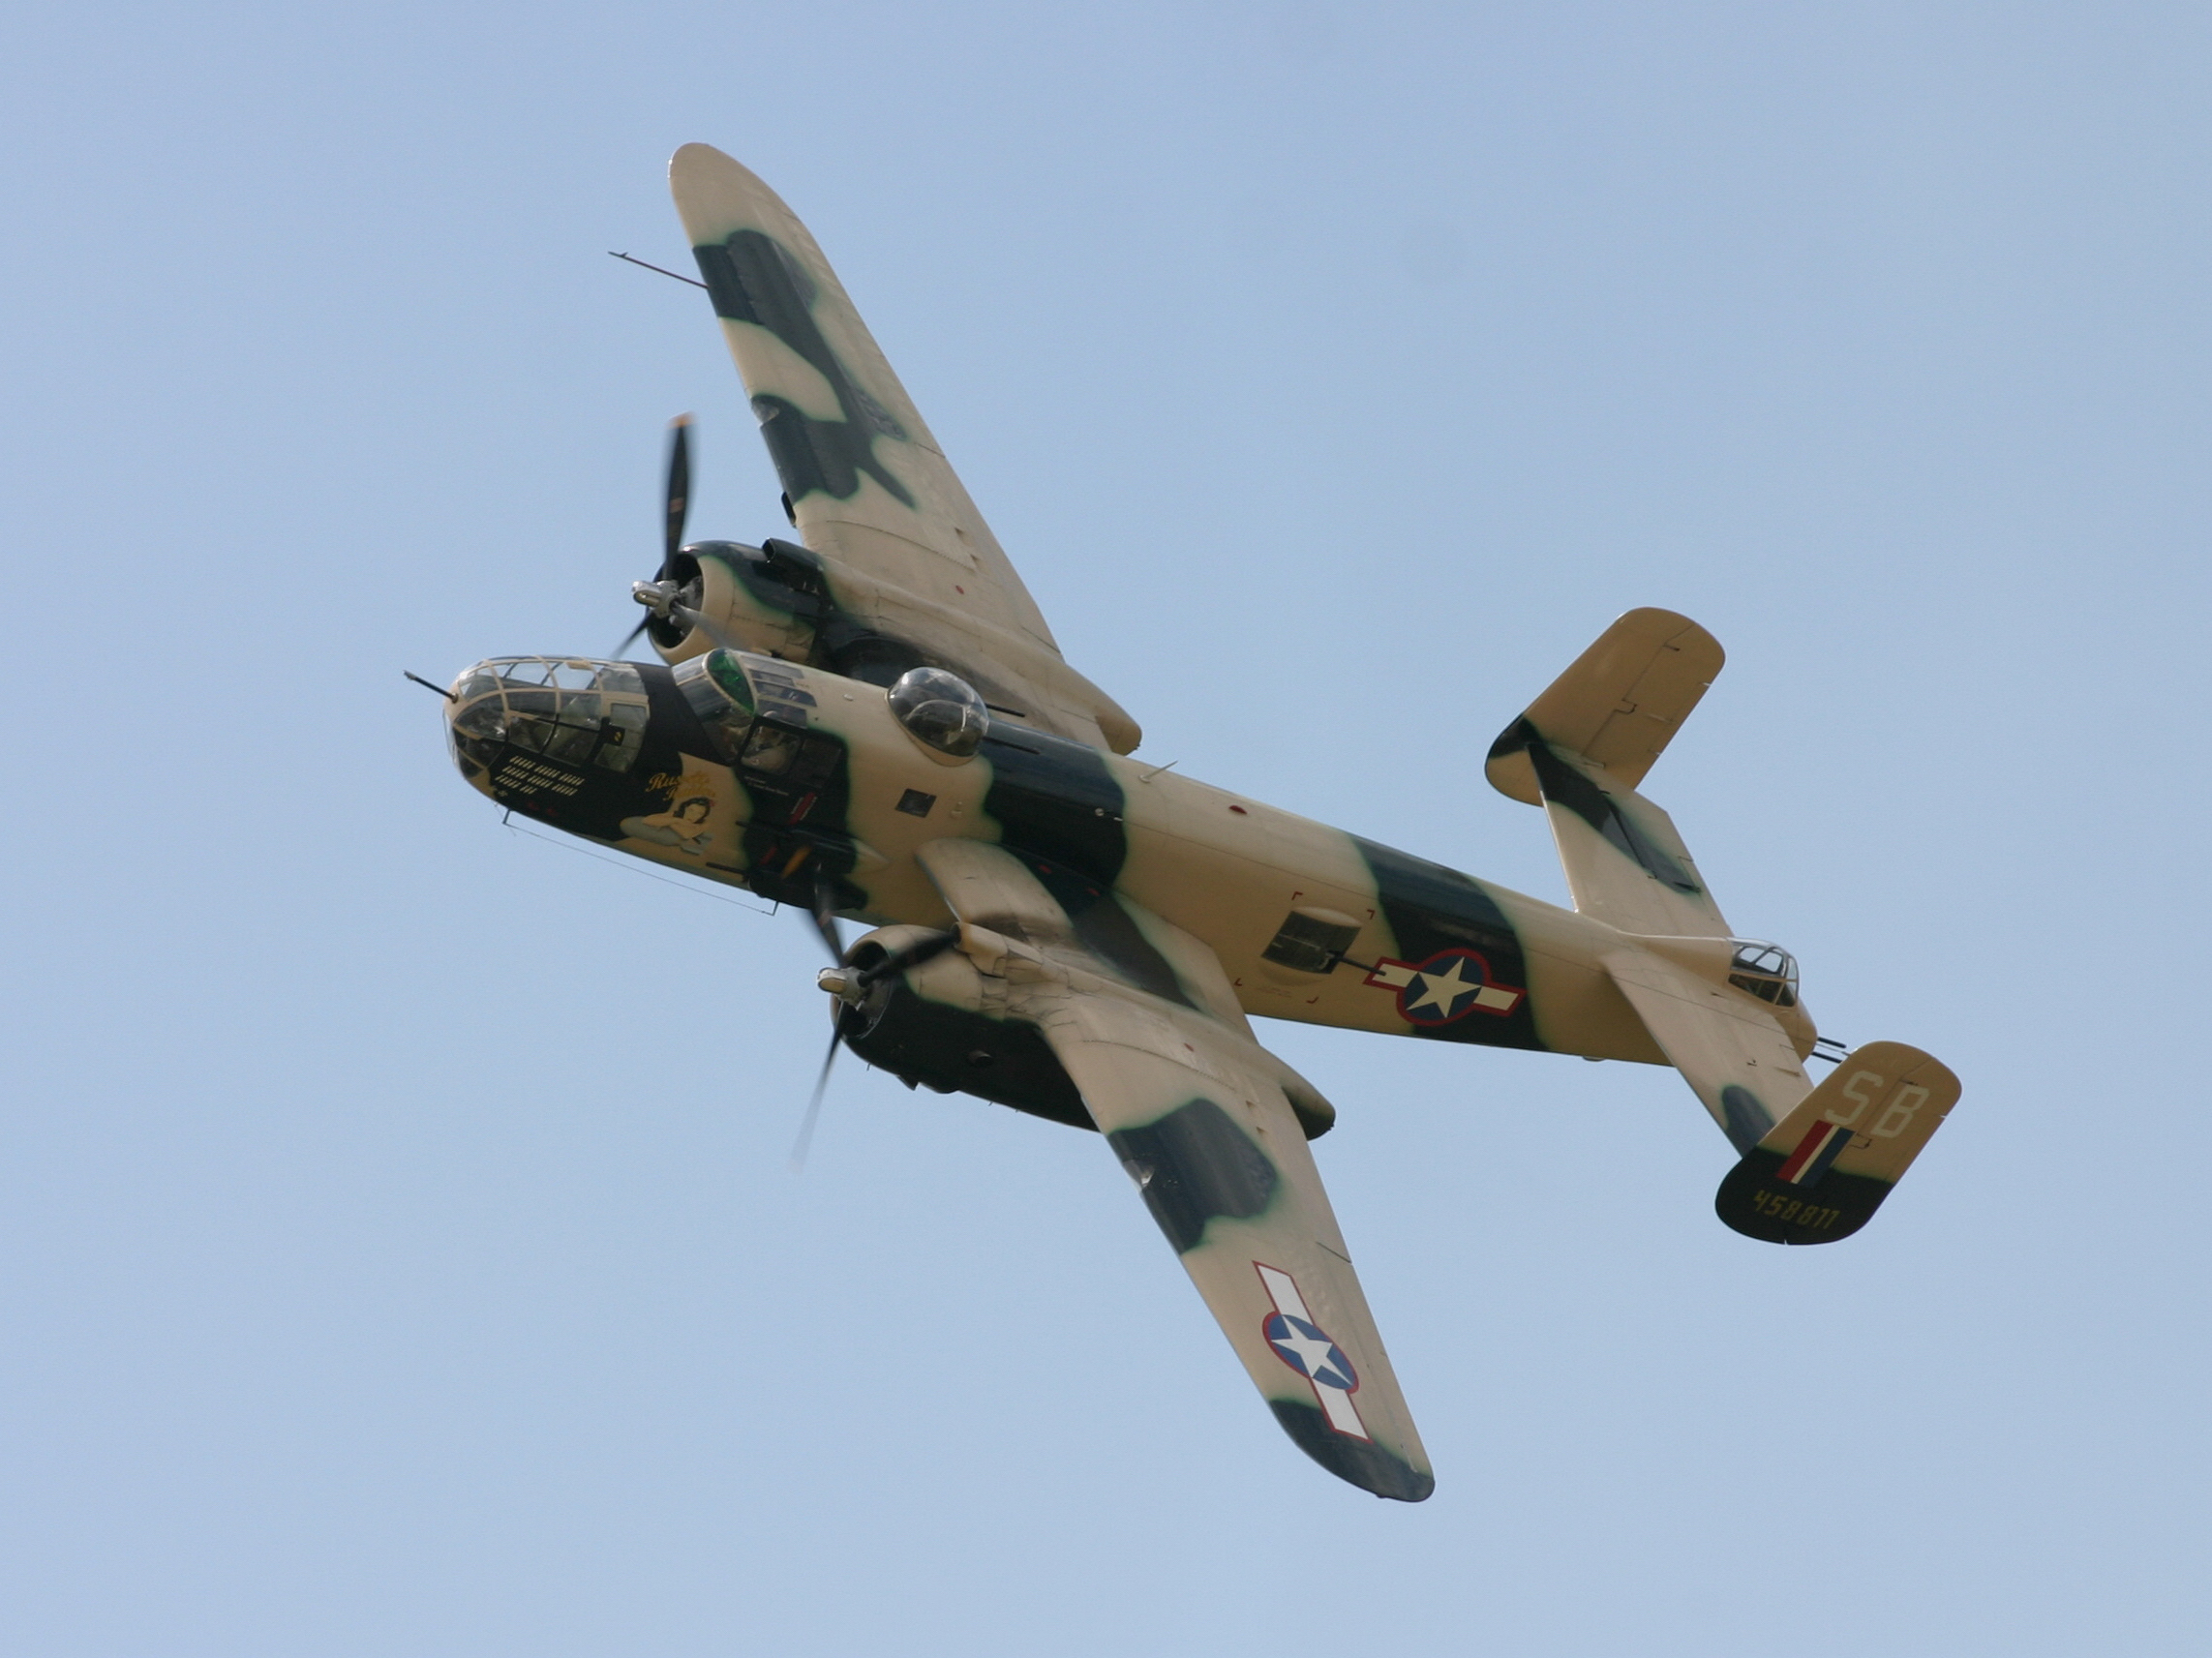 planes 4 sale with North American B 25 Mitchell on Scrap Aircraft On Sale In UAE Auction Site moreover Dieselpunk likewise F4u Corsair S Rtf With Safe Reg 3B Technology Hbz8200 furthermore Dhc 6 Twin Otter as well 10962178.